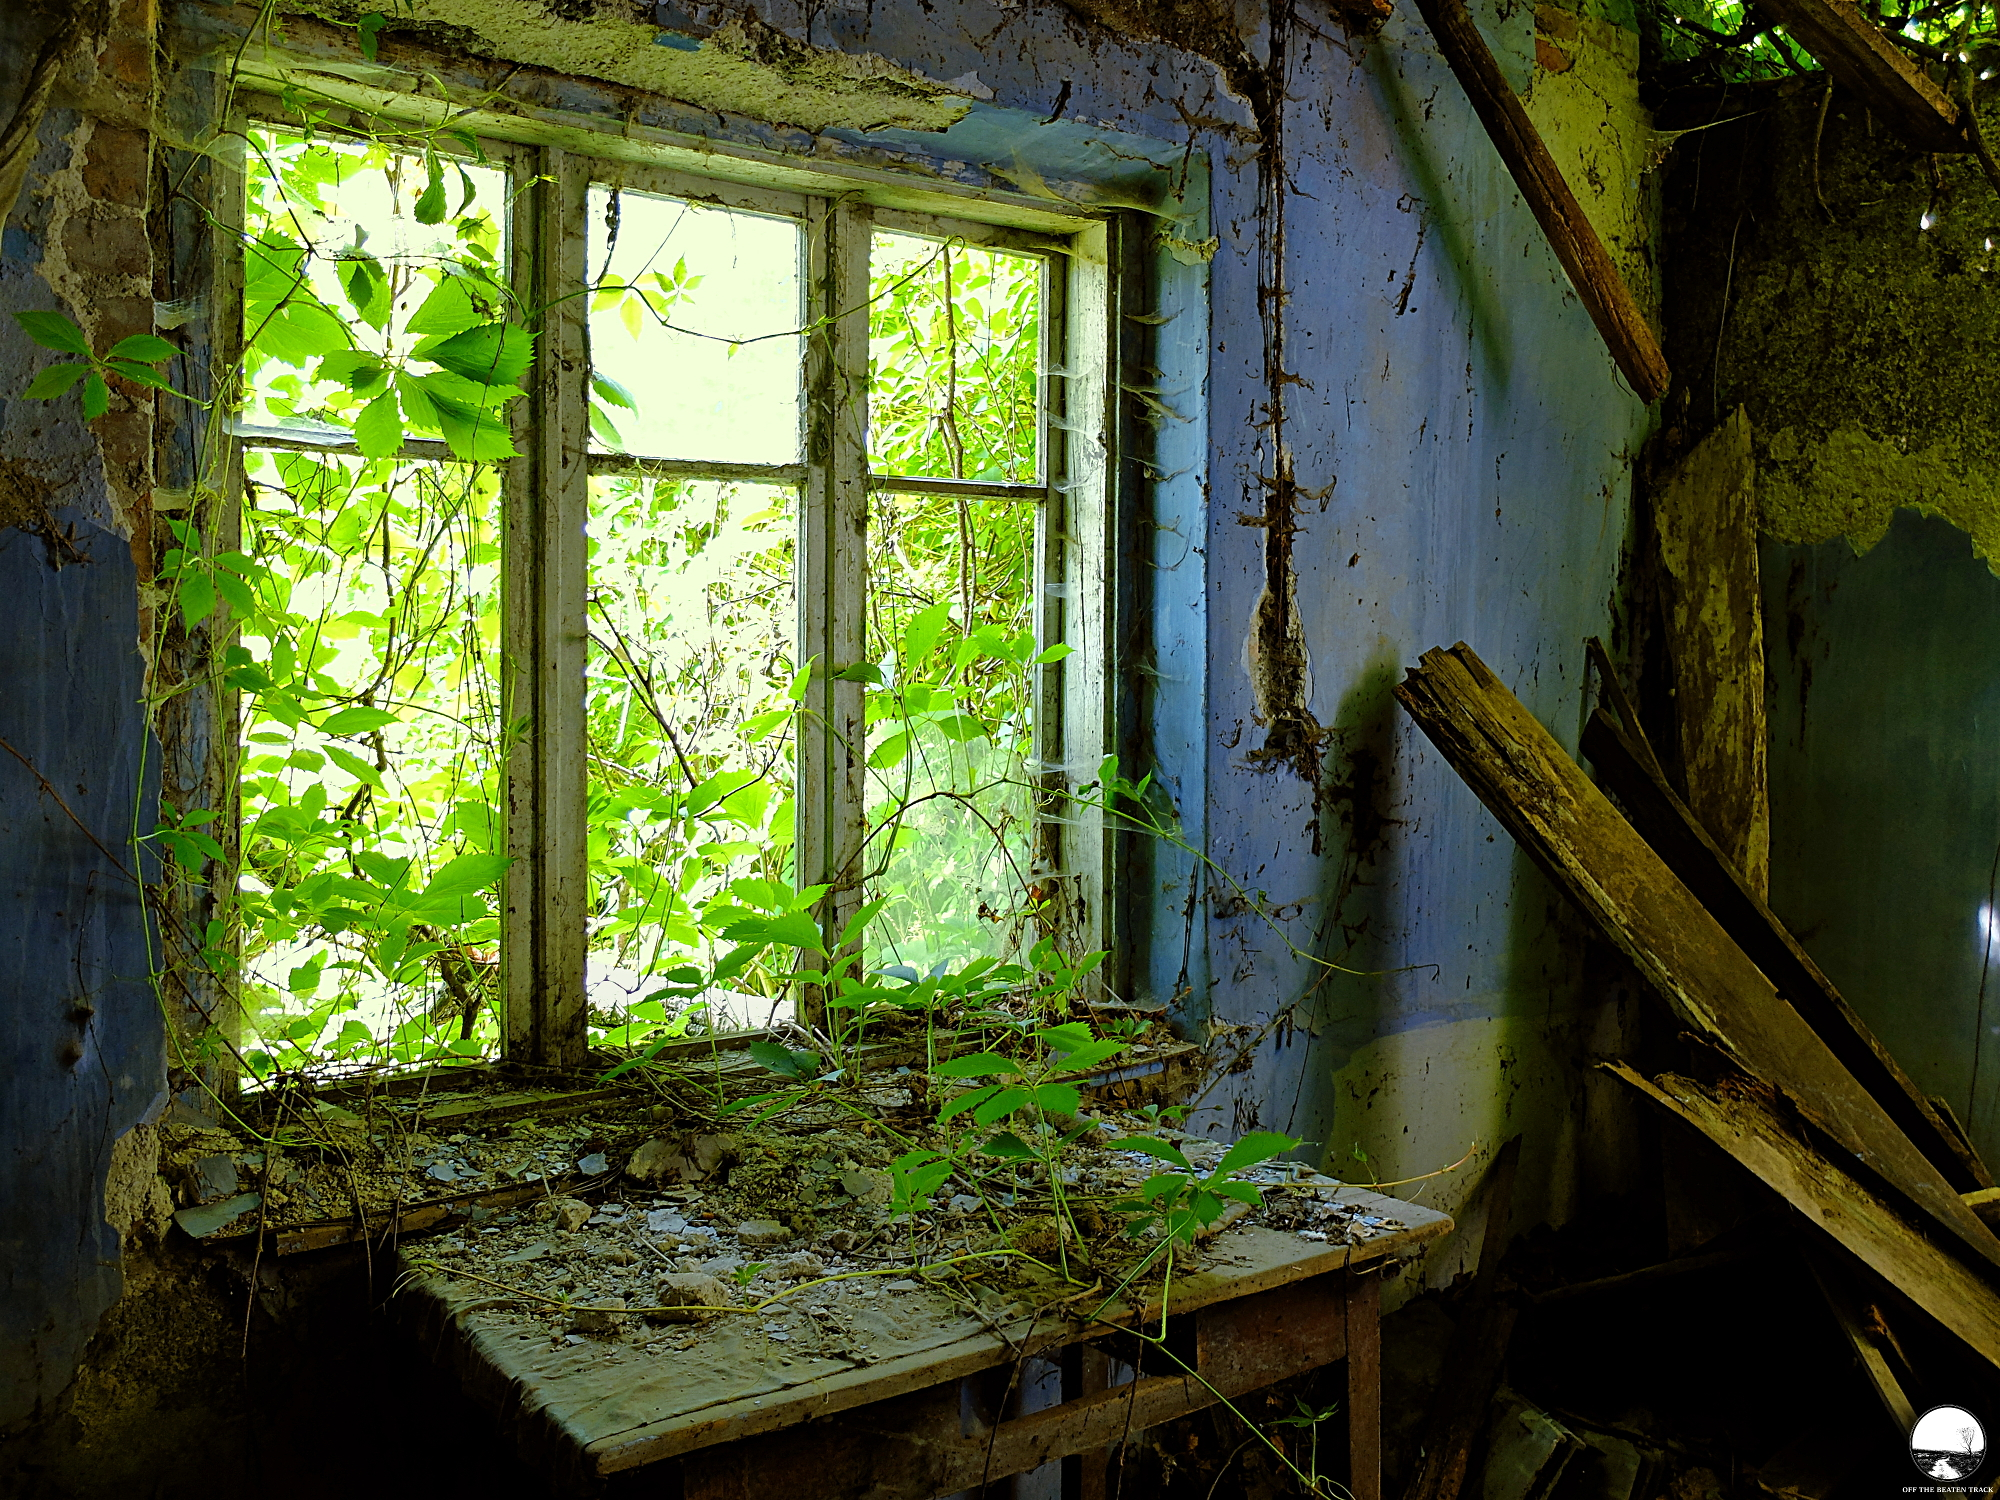 The Abandoned House 'What the Vines Are Hiding' (Poland) - 15